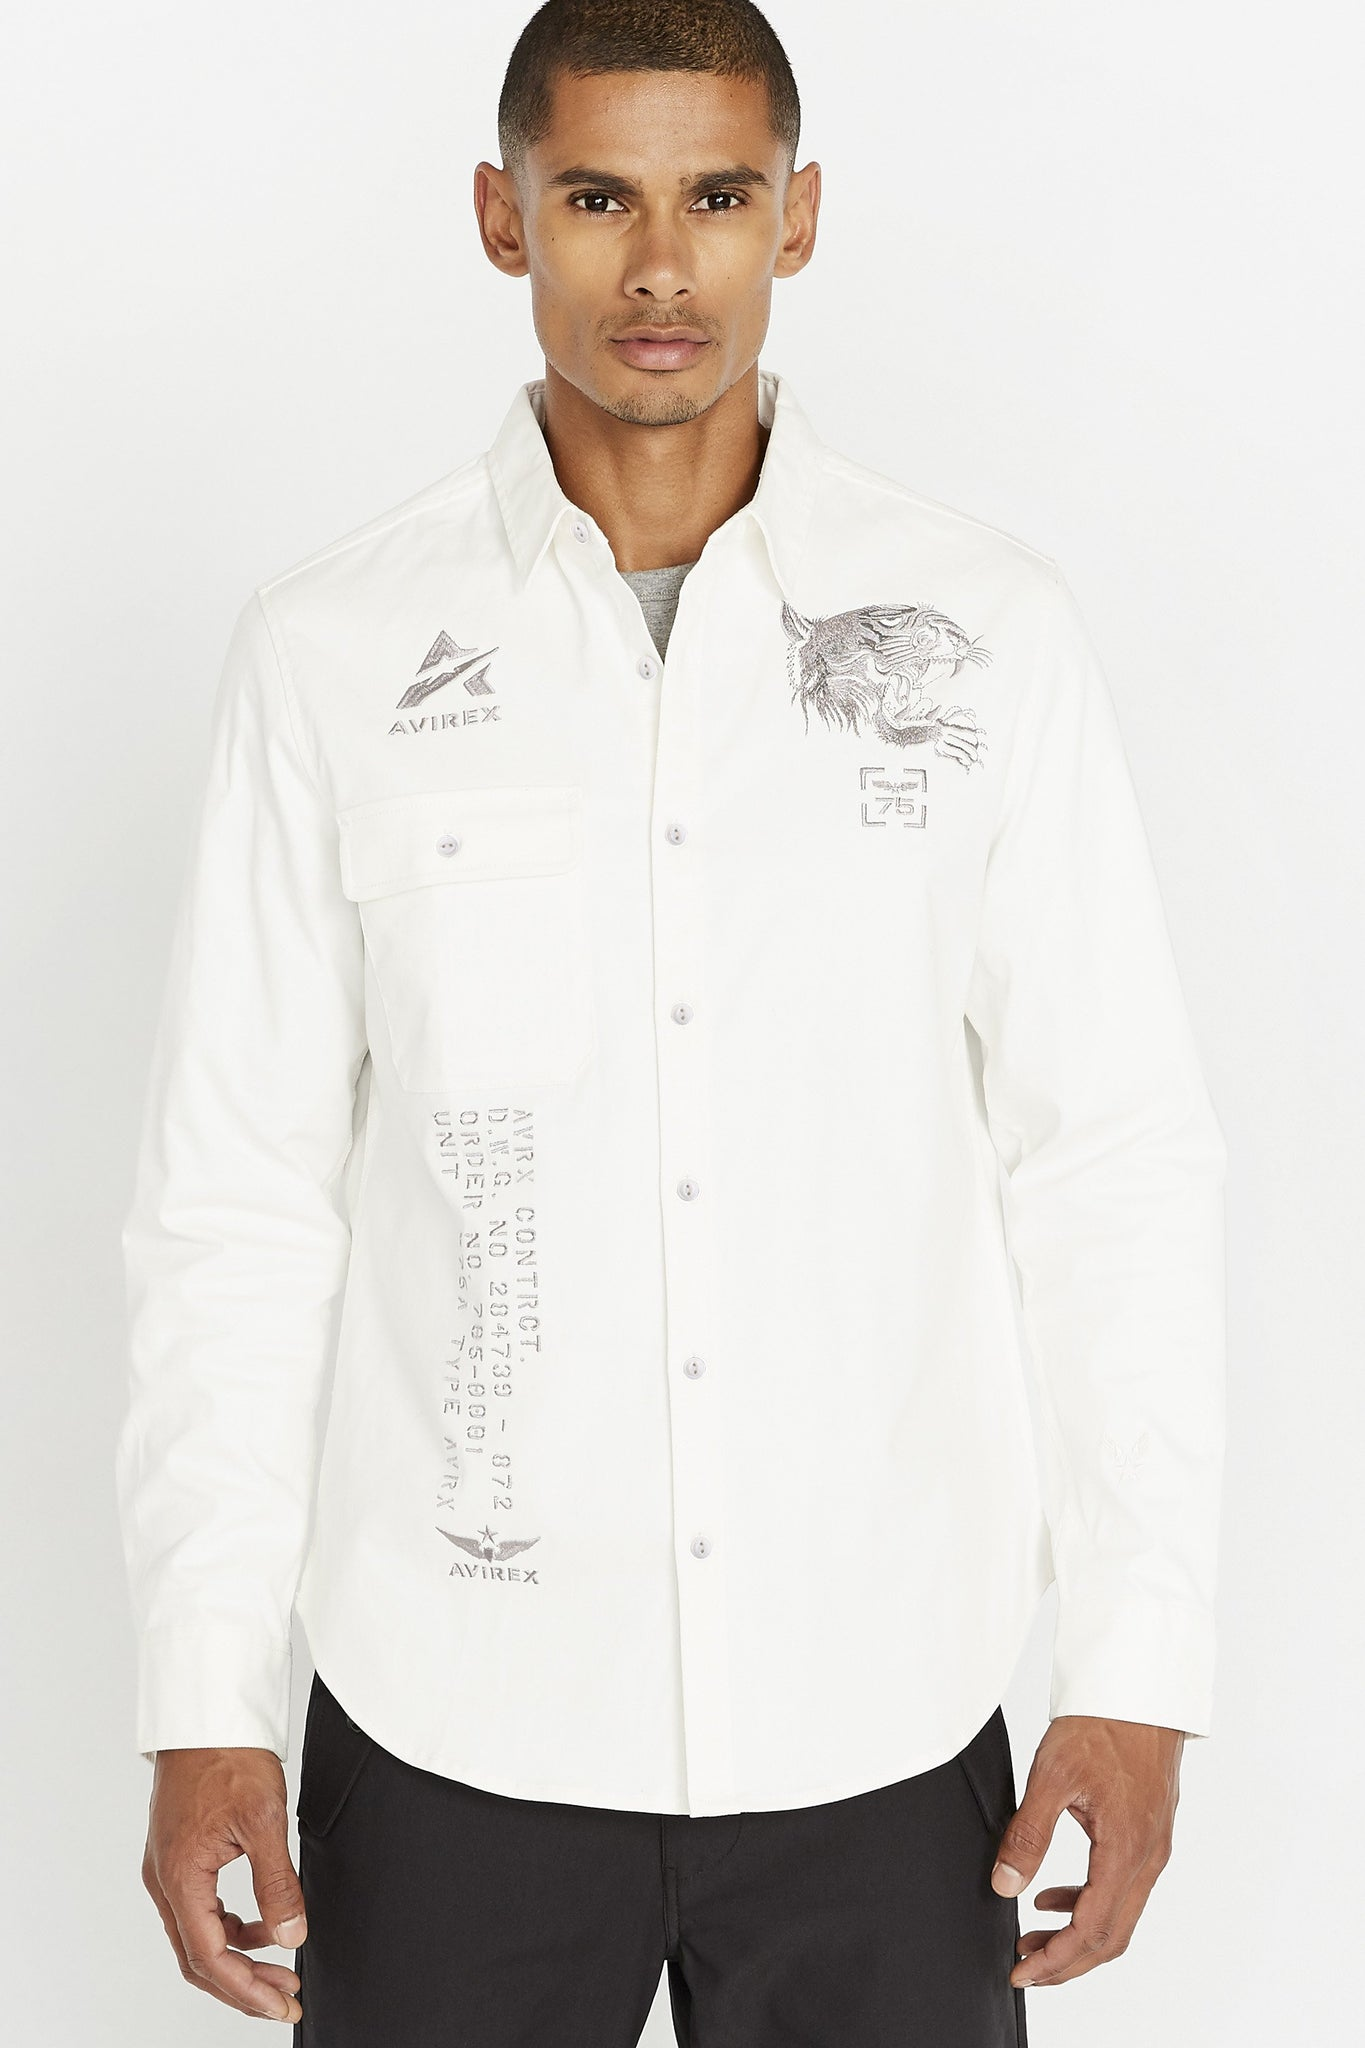 Men wearing a white long sleeve shirt with one front button-flap pocket on the right chest with embroidery logo above that and embroidery tiger on left chest embroidery patch on right bottom corner